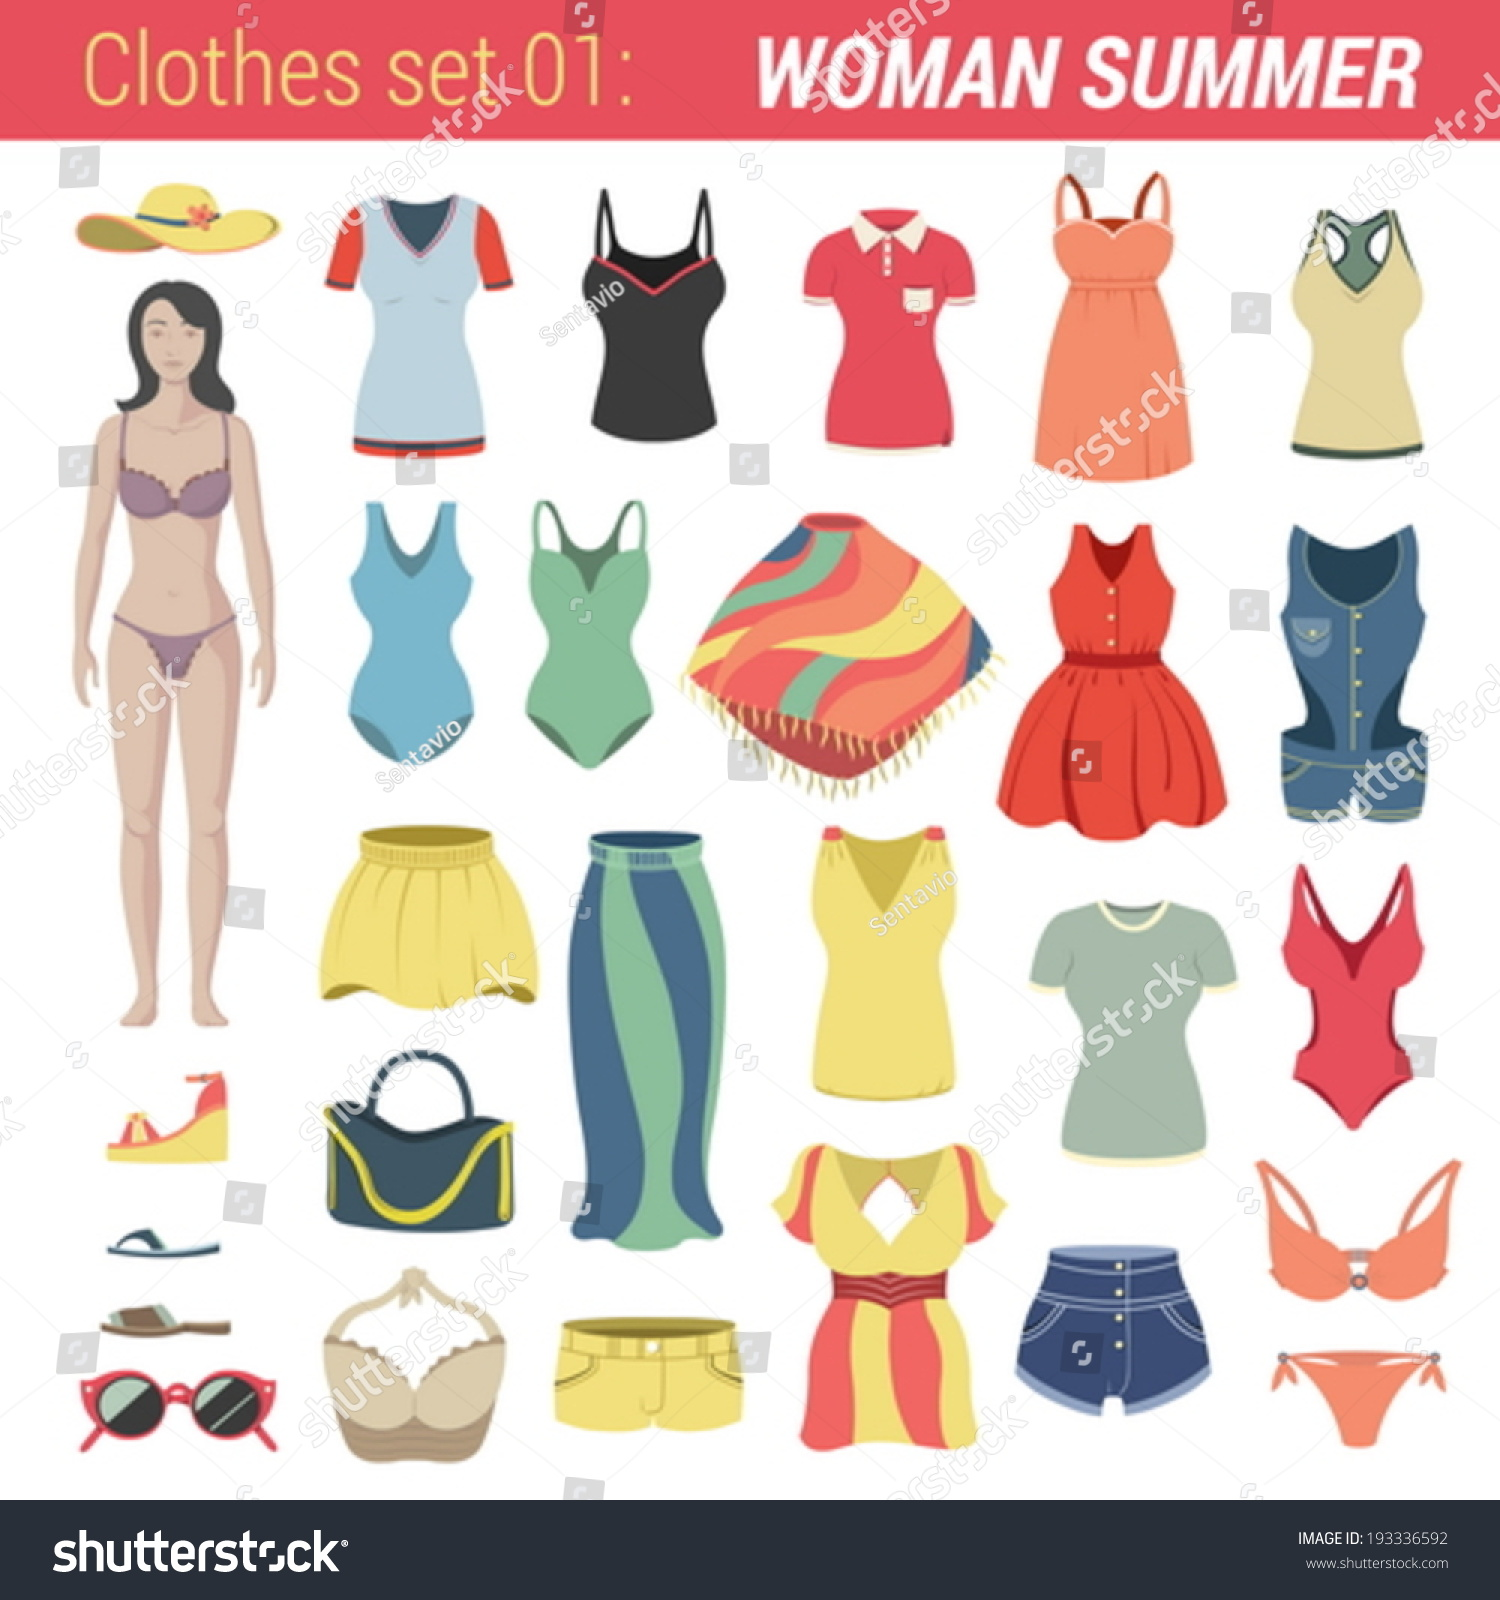 Woman Summer Clothing Vector Icon Set Stock Vector 193336592 ...